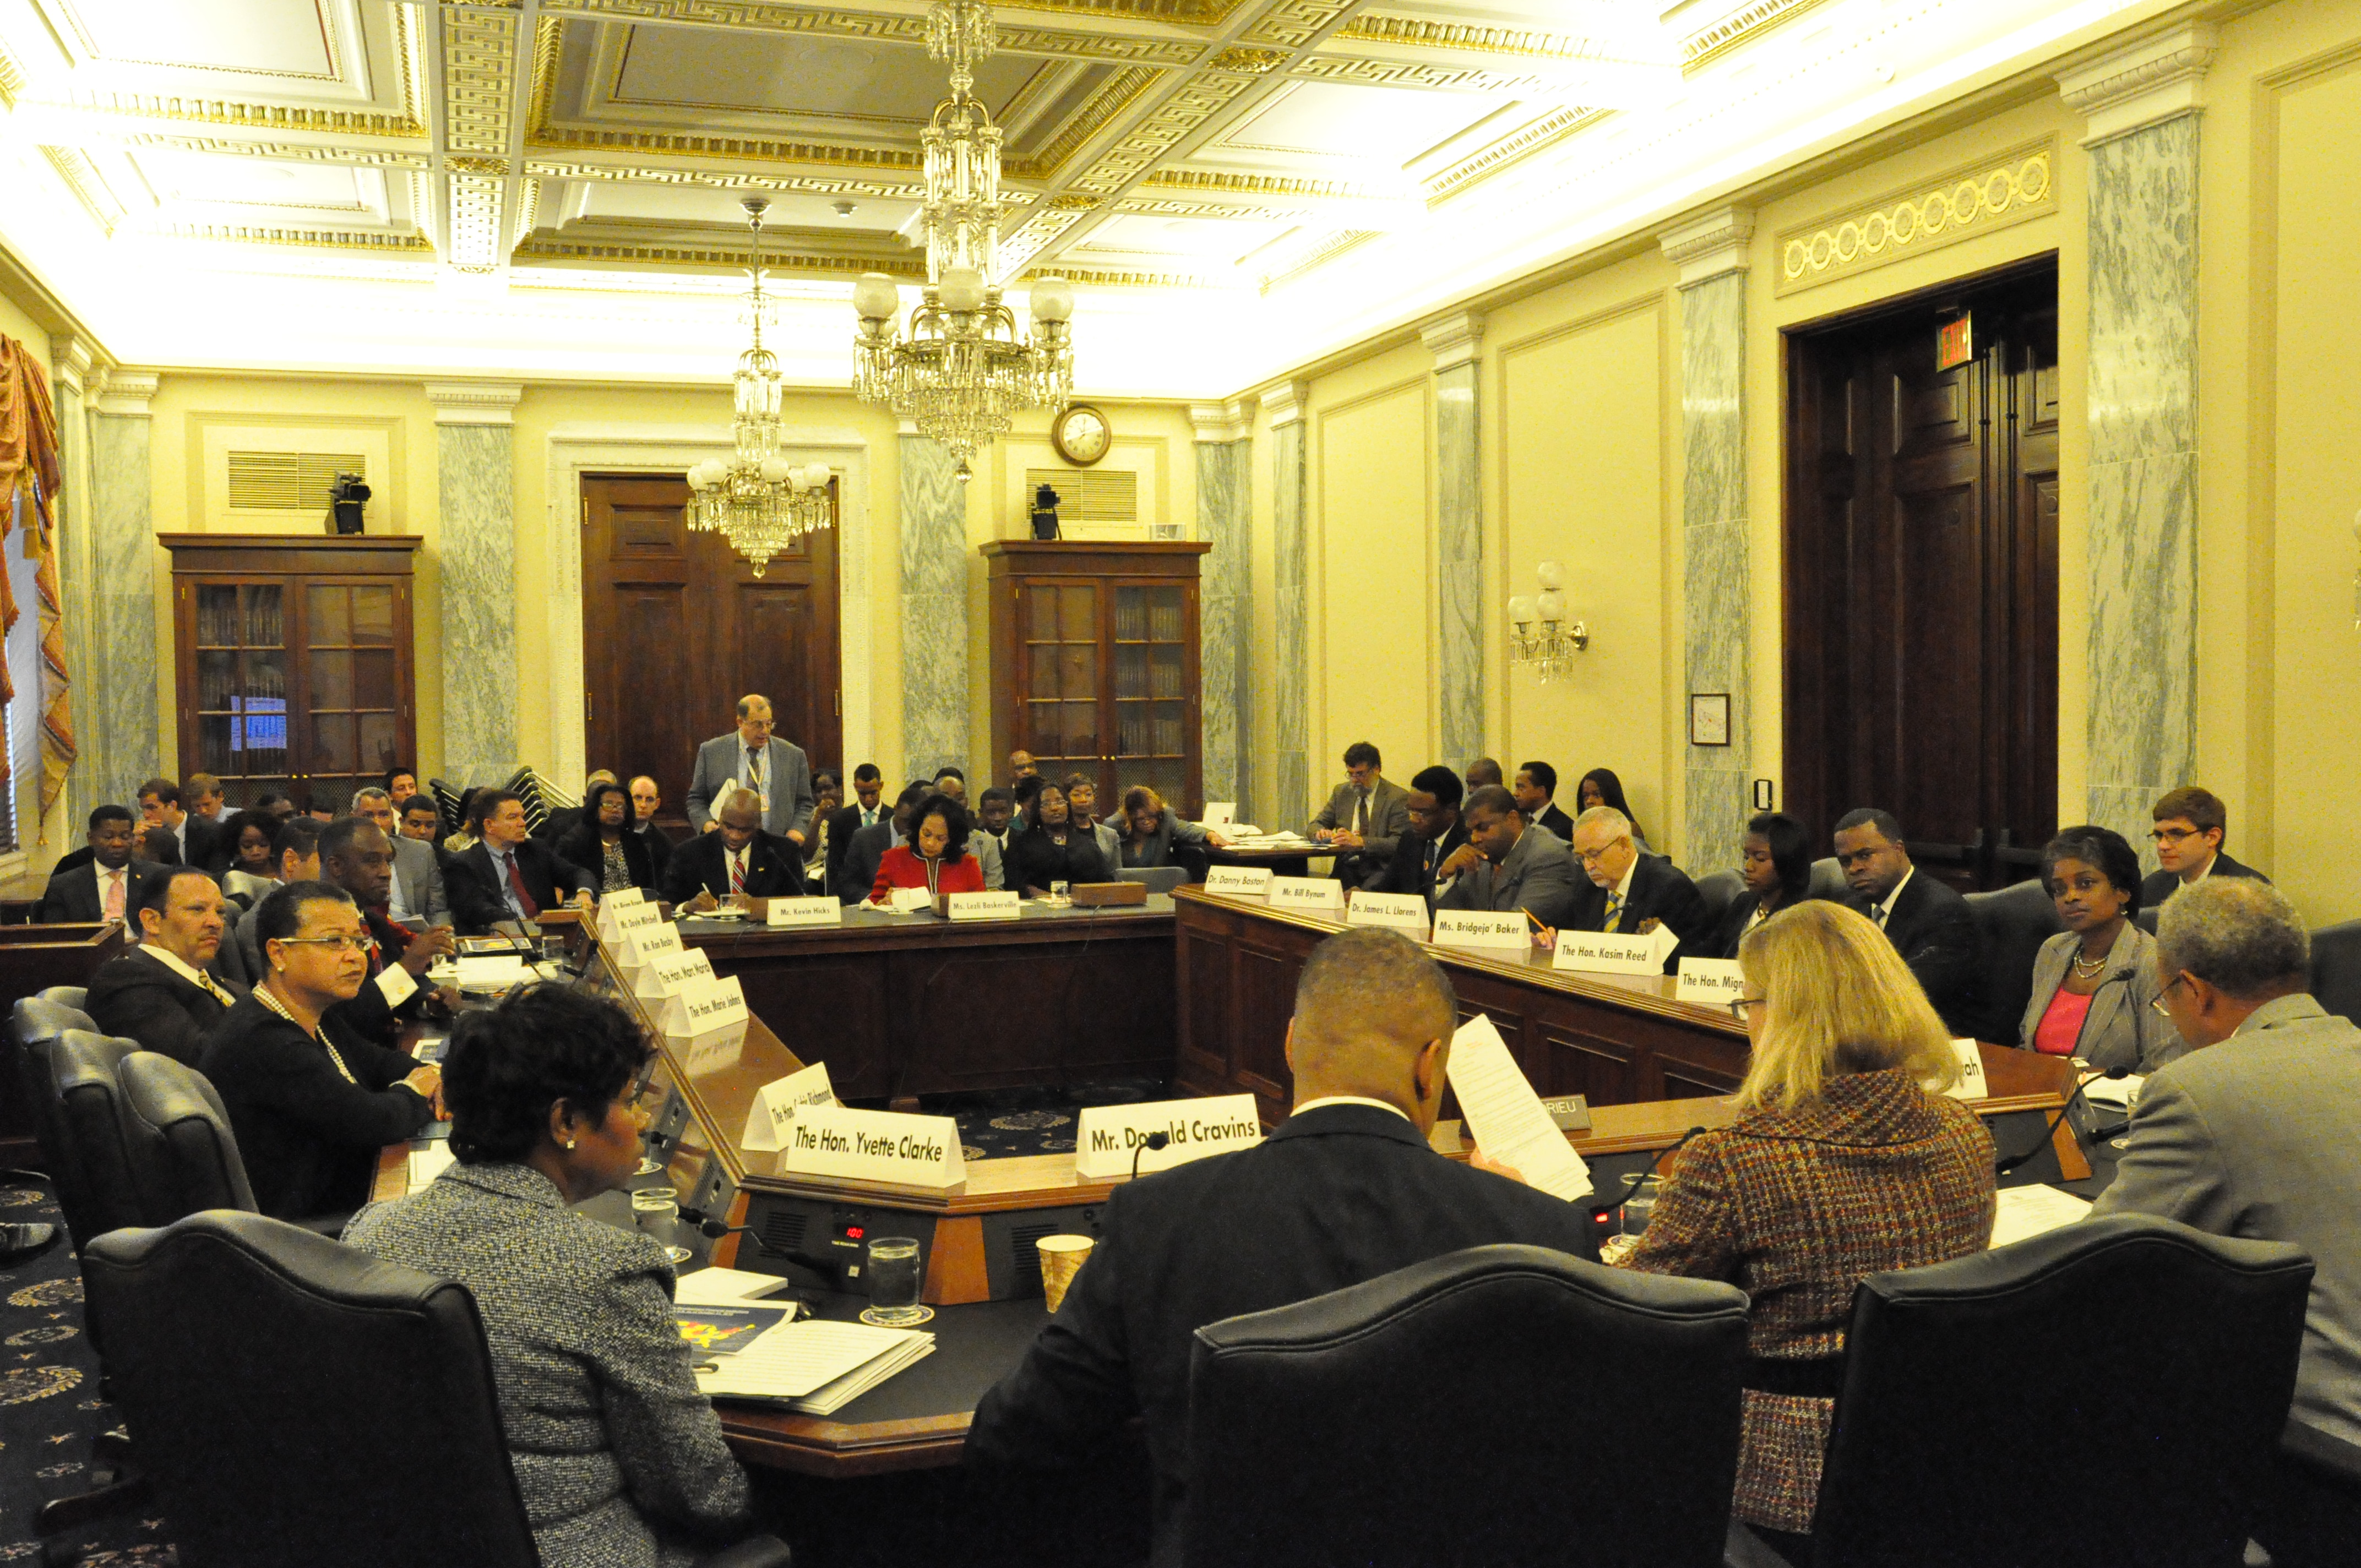 bridgeja-at-the-roundtable-discussion-with-senator-landrieu-others.jpg